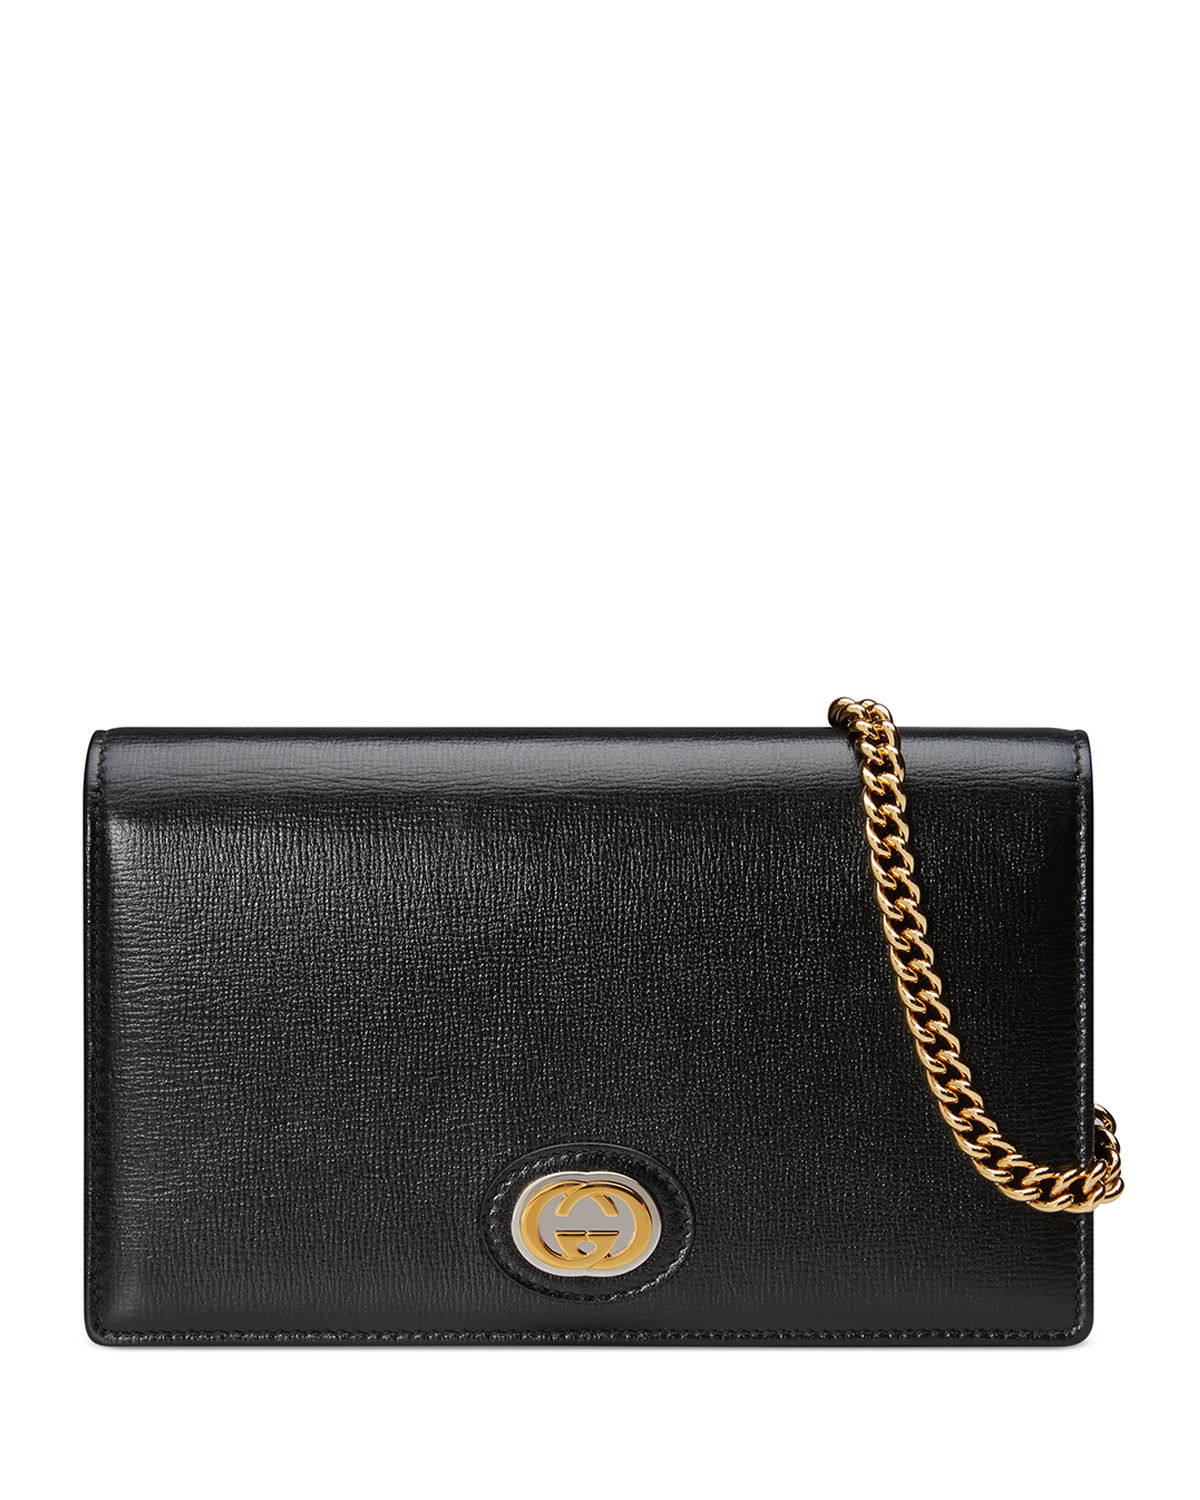 Gucci Cases MARINA LEATHER FLAP CARD CASE WALLET ON CHAIN